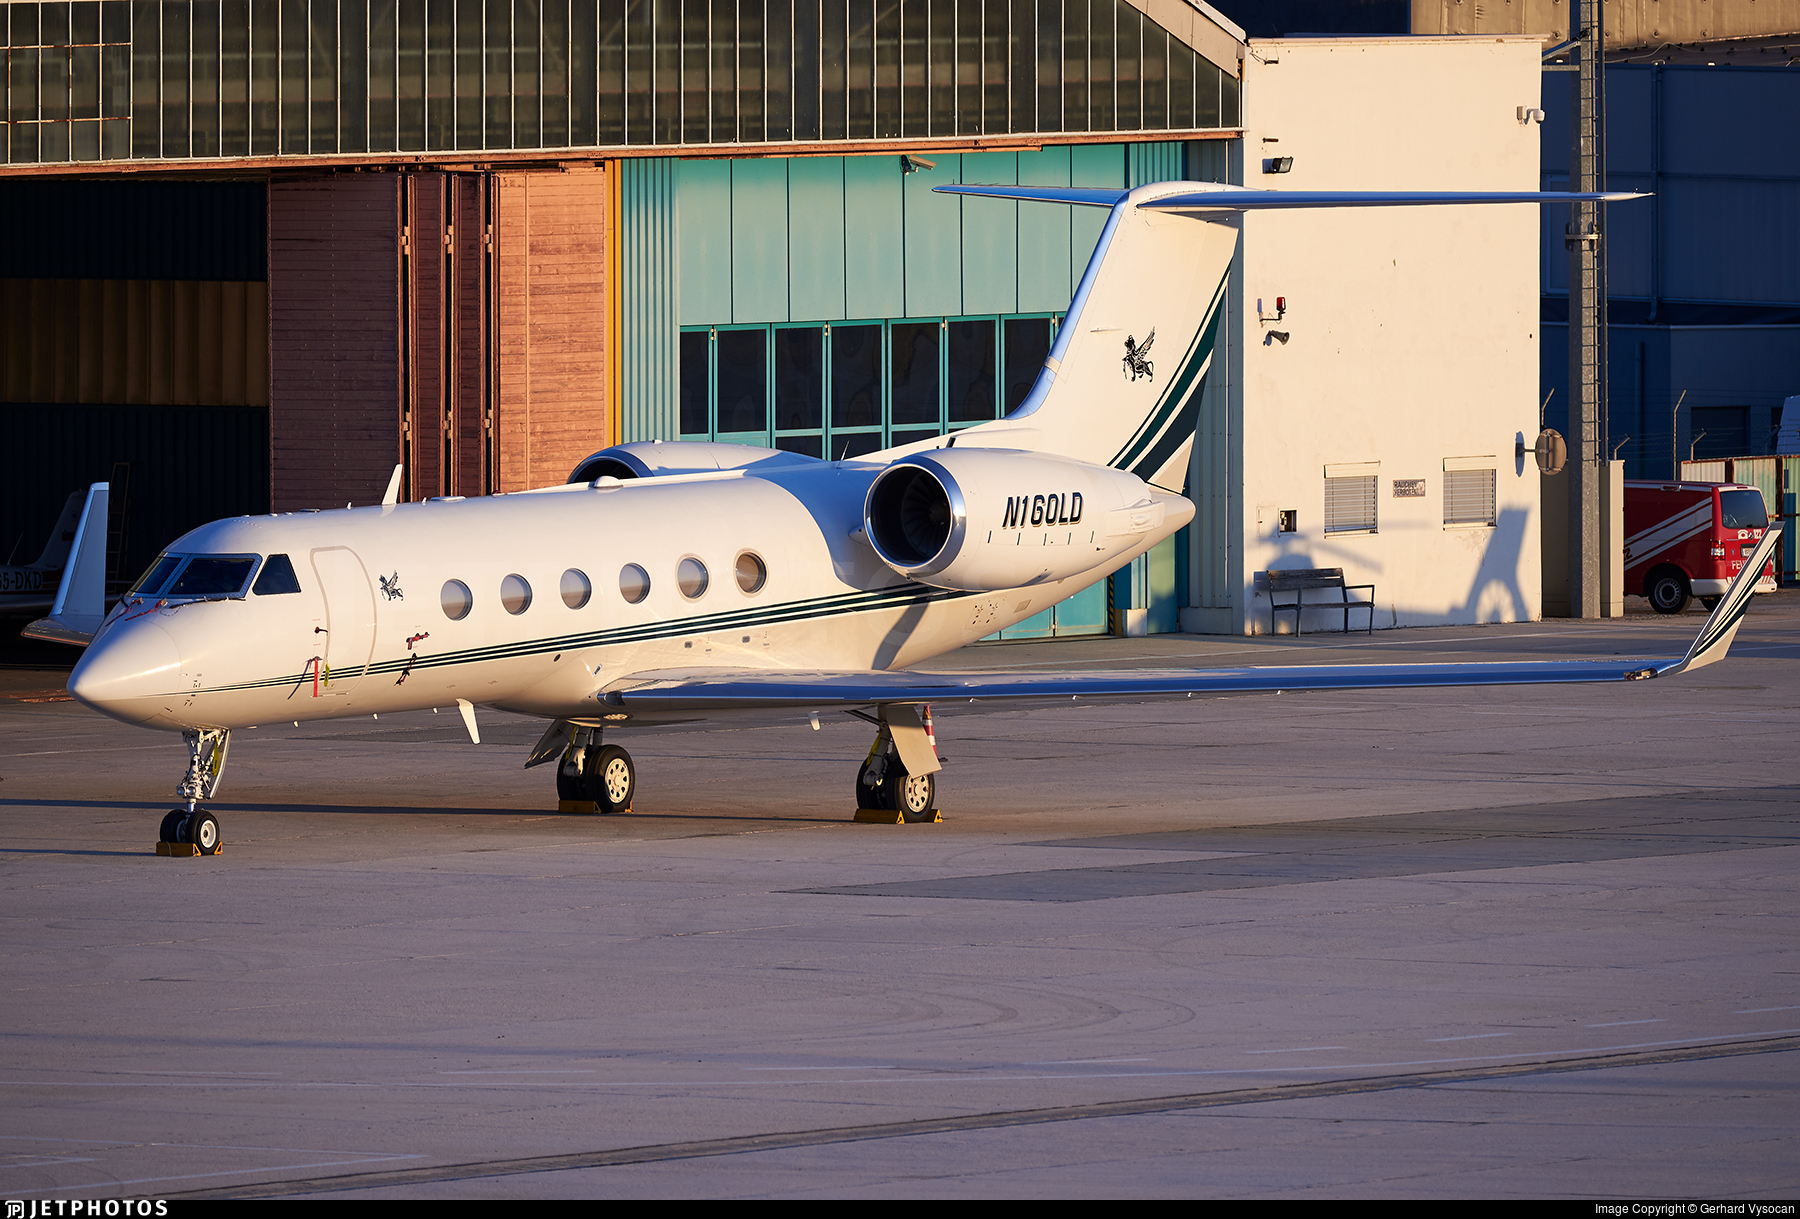 N160LD - Gulfstream G-IV - Private